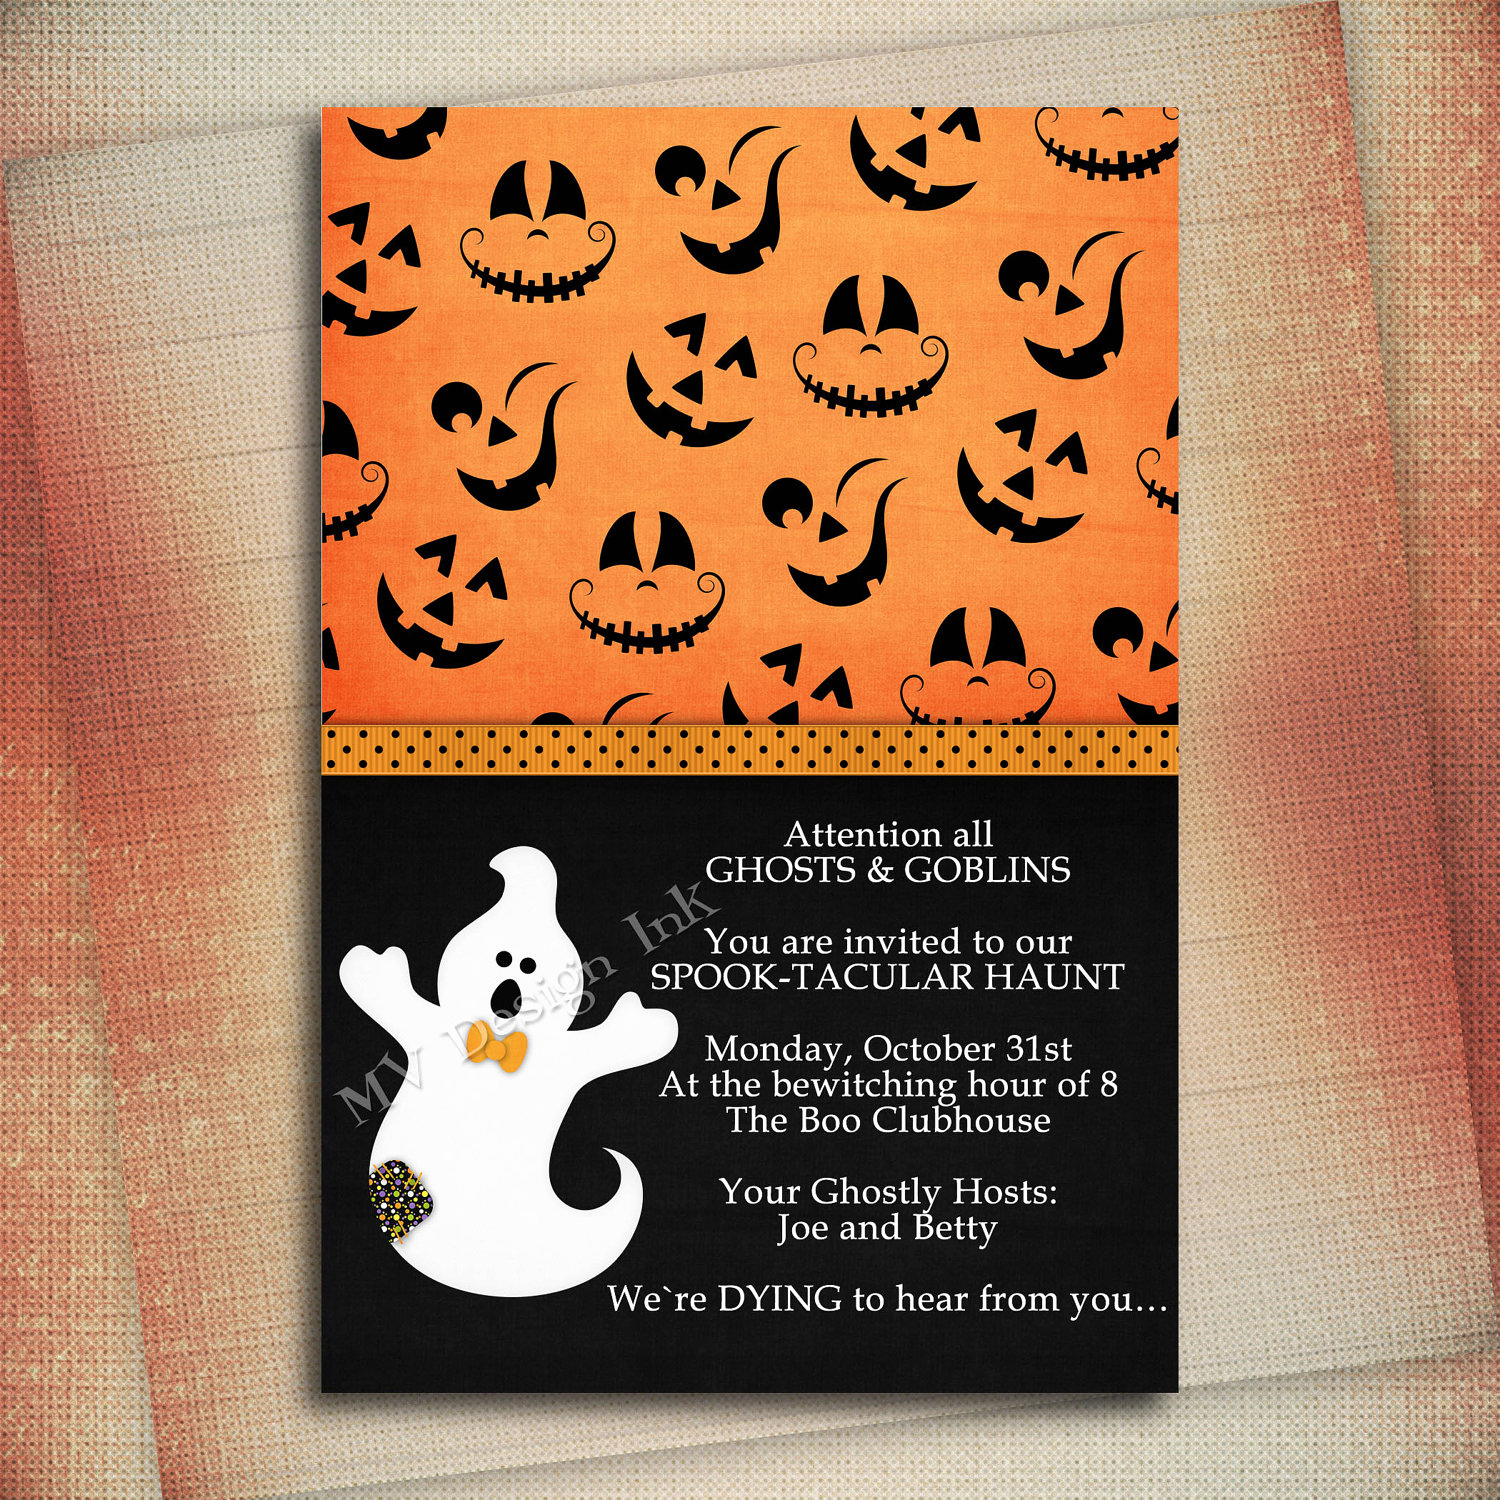 Halloween Party Invitation Wording Awesome Halloween Birthday Invitation Wording – Festival Collections